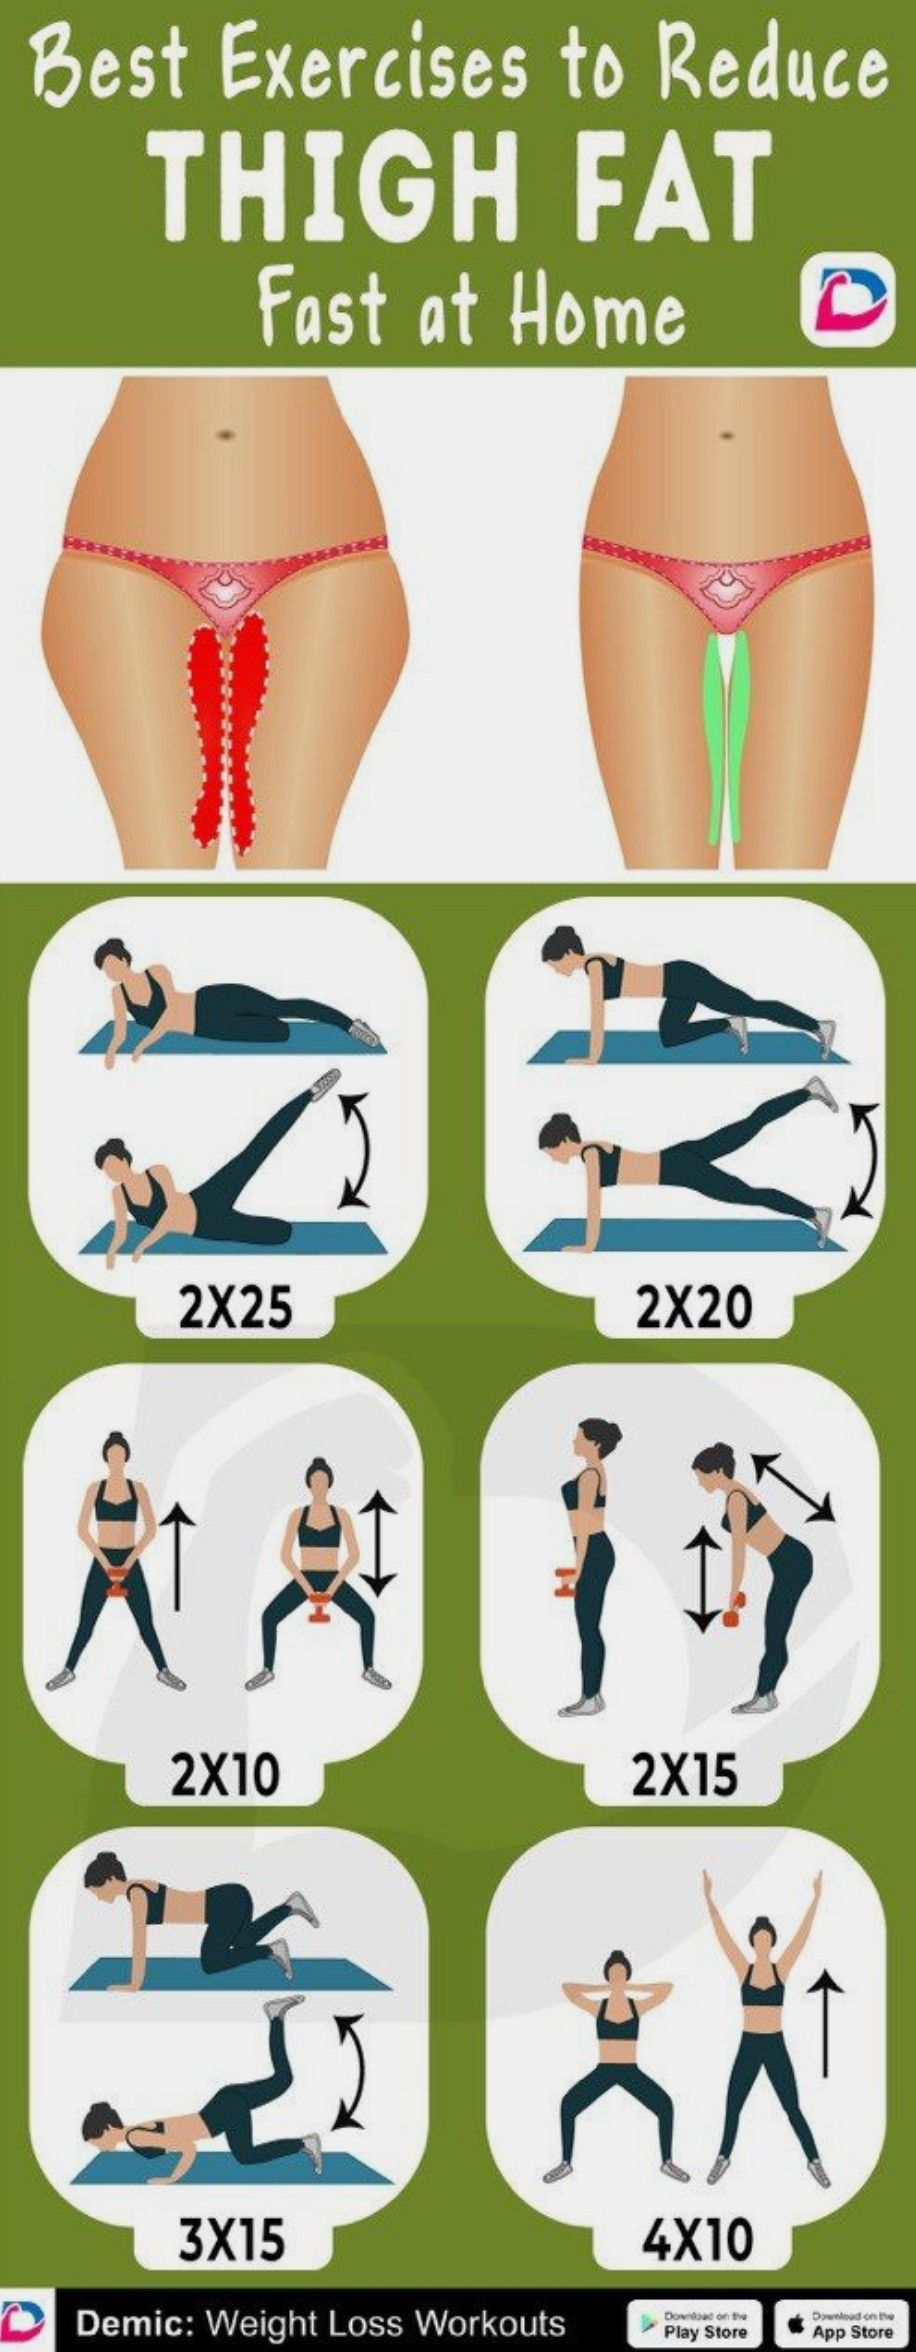 Best Exercises to Reduce THIGH FAT.Click to INSTALL #fitnessexercises